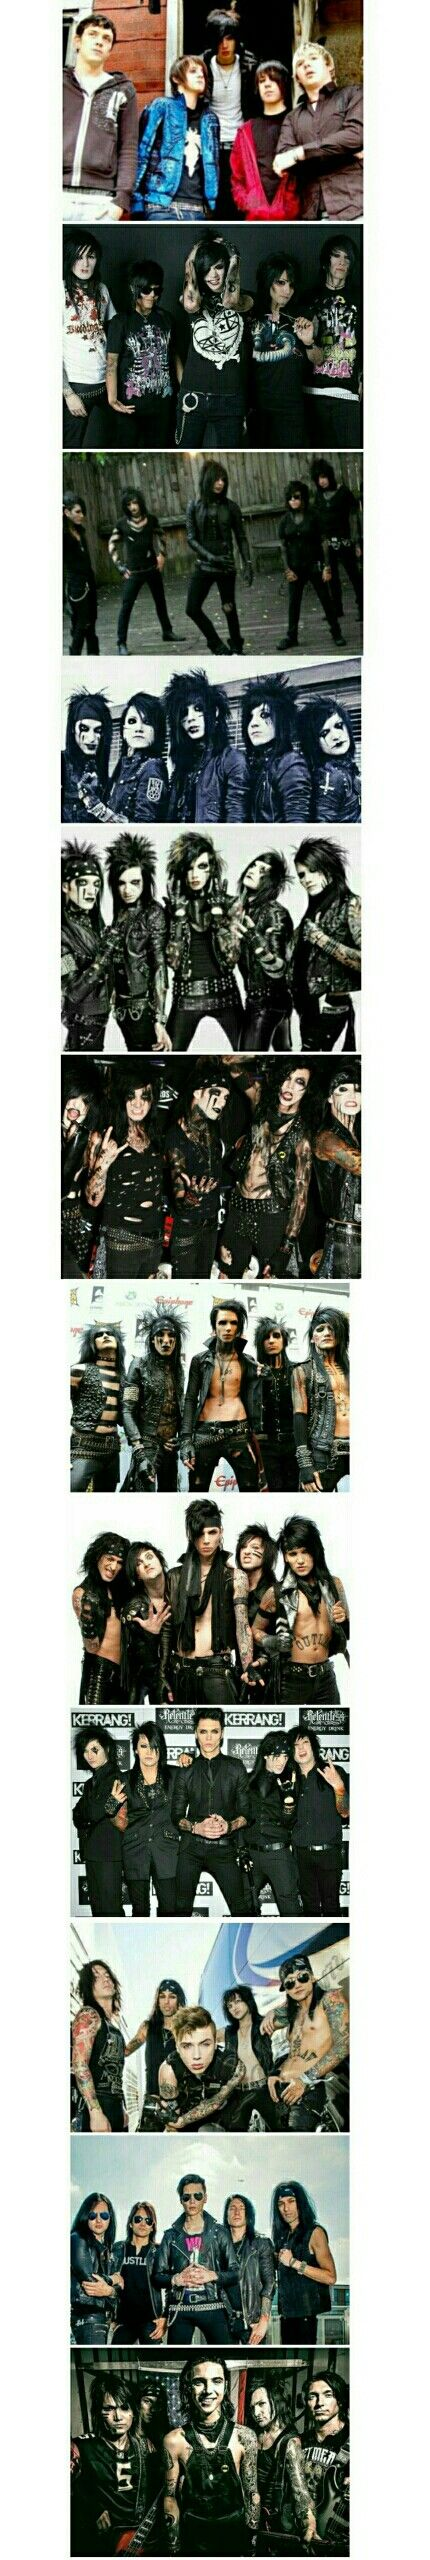 Black Veil Brides over the years.